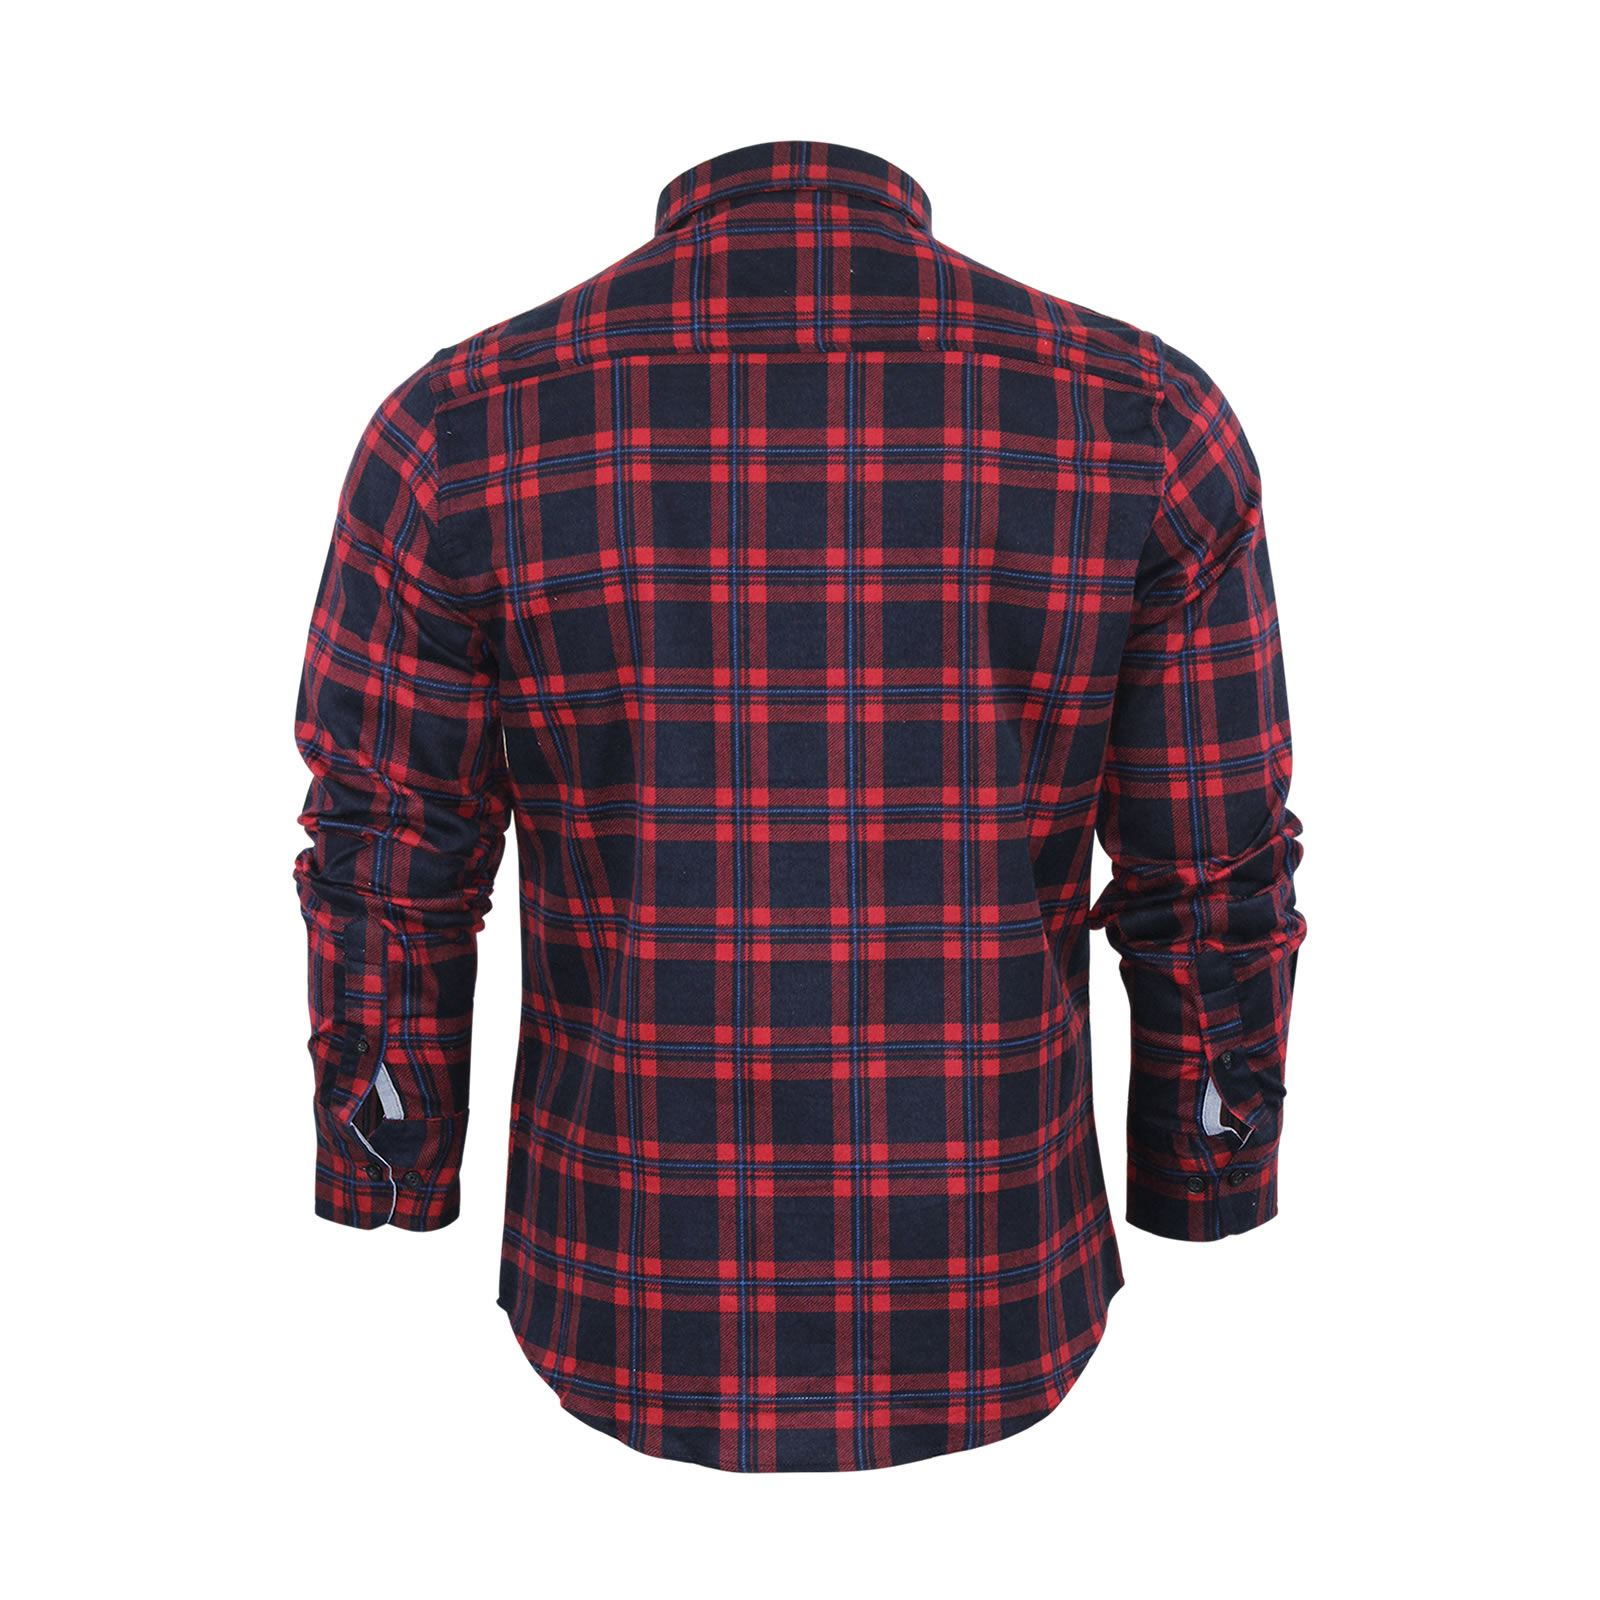 Mens-Check-Shirt-Brave-Soul-Flannel-Brushed-Cotton-Long-Sleeve-Casual-Top thumbnail 72